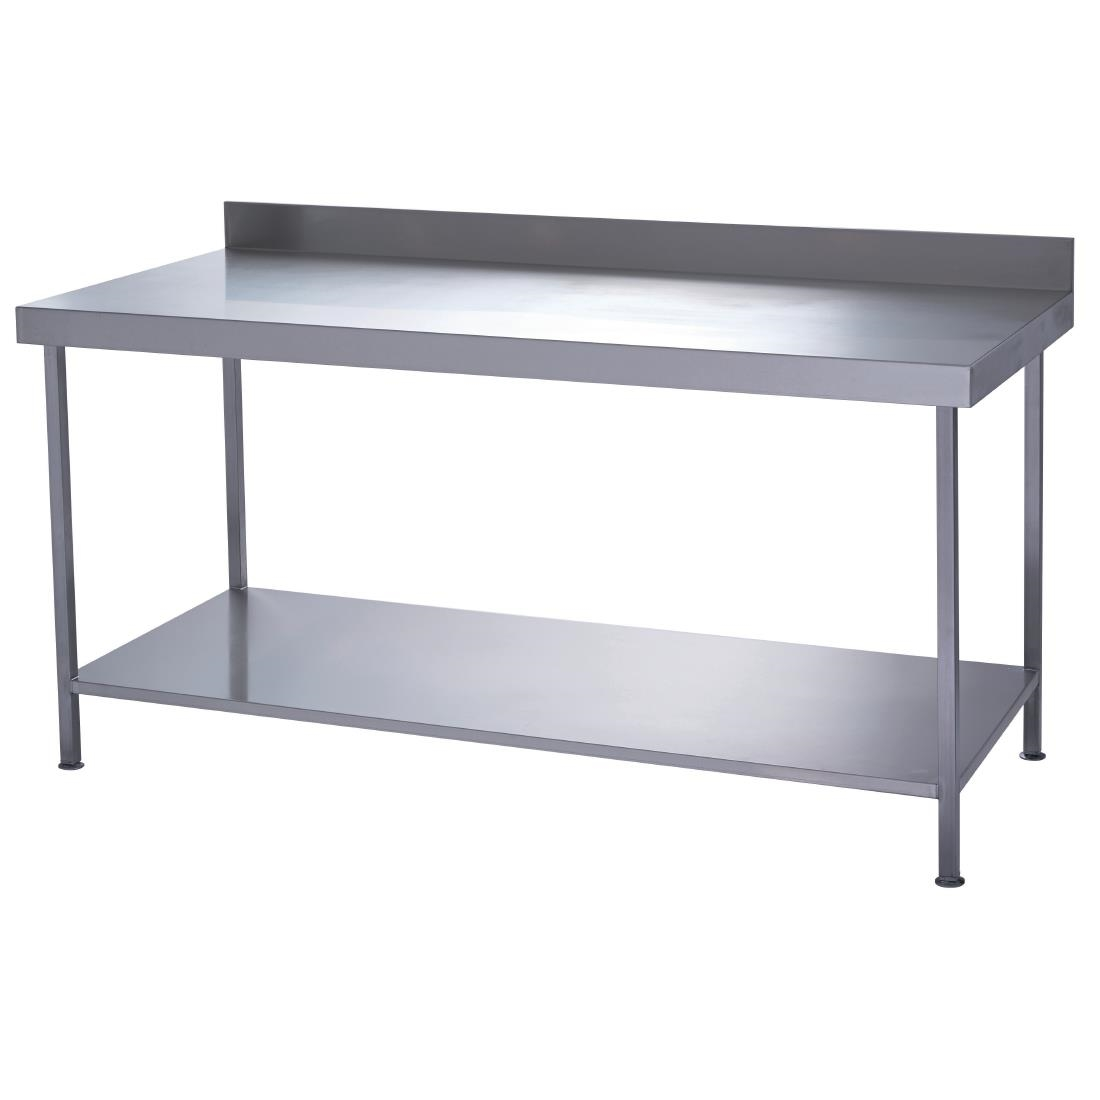 Parry Fully Welded Stainless Steel Wall Table With